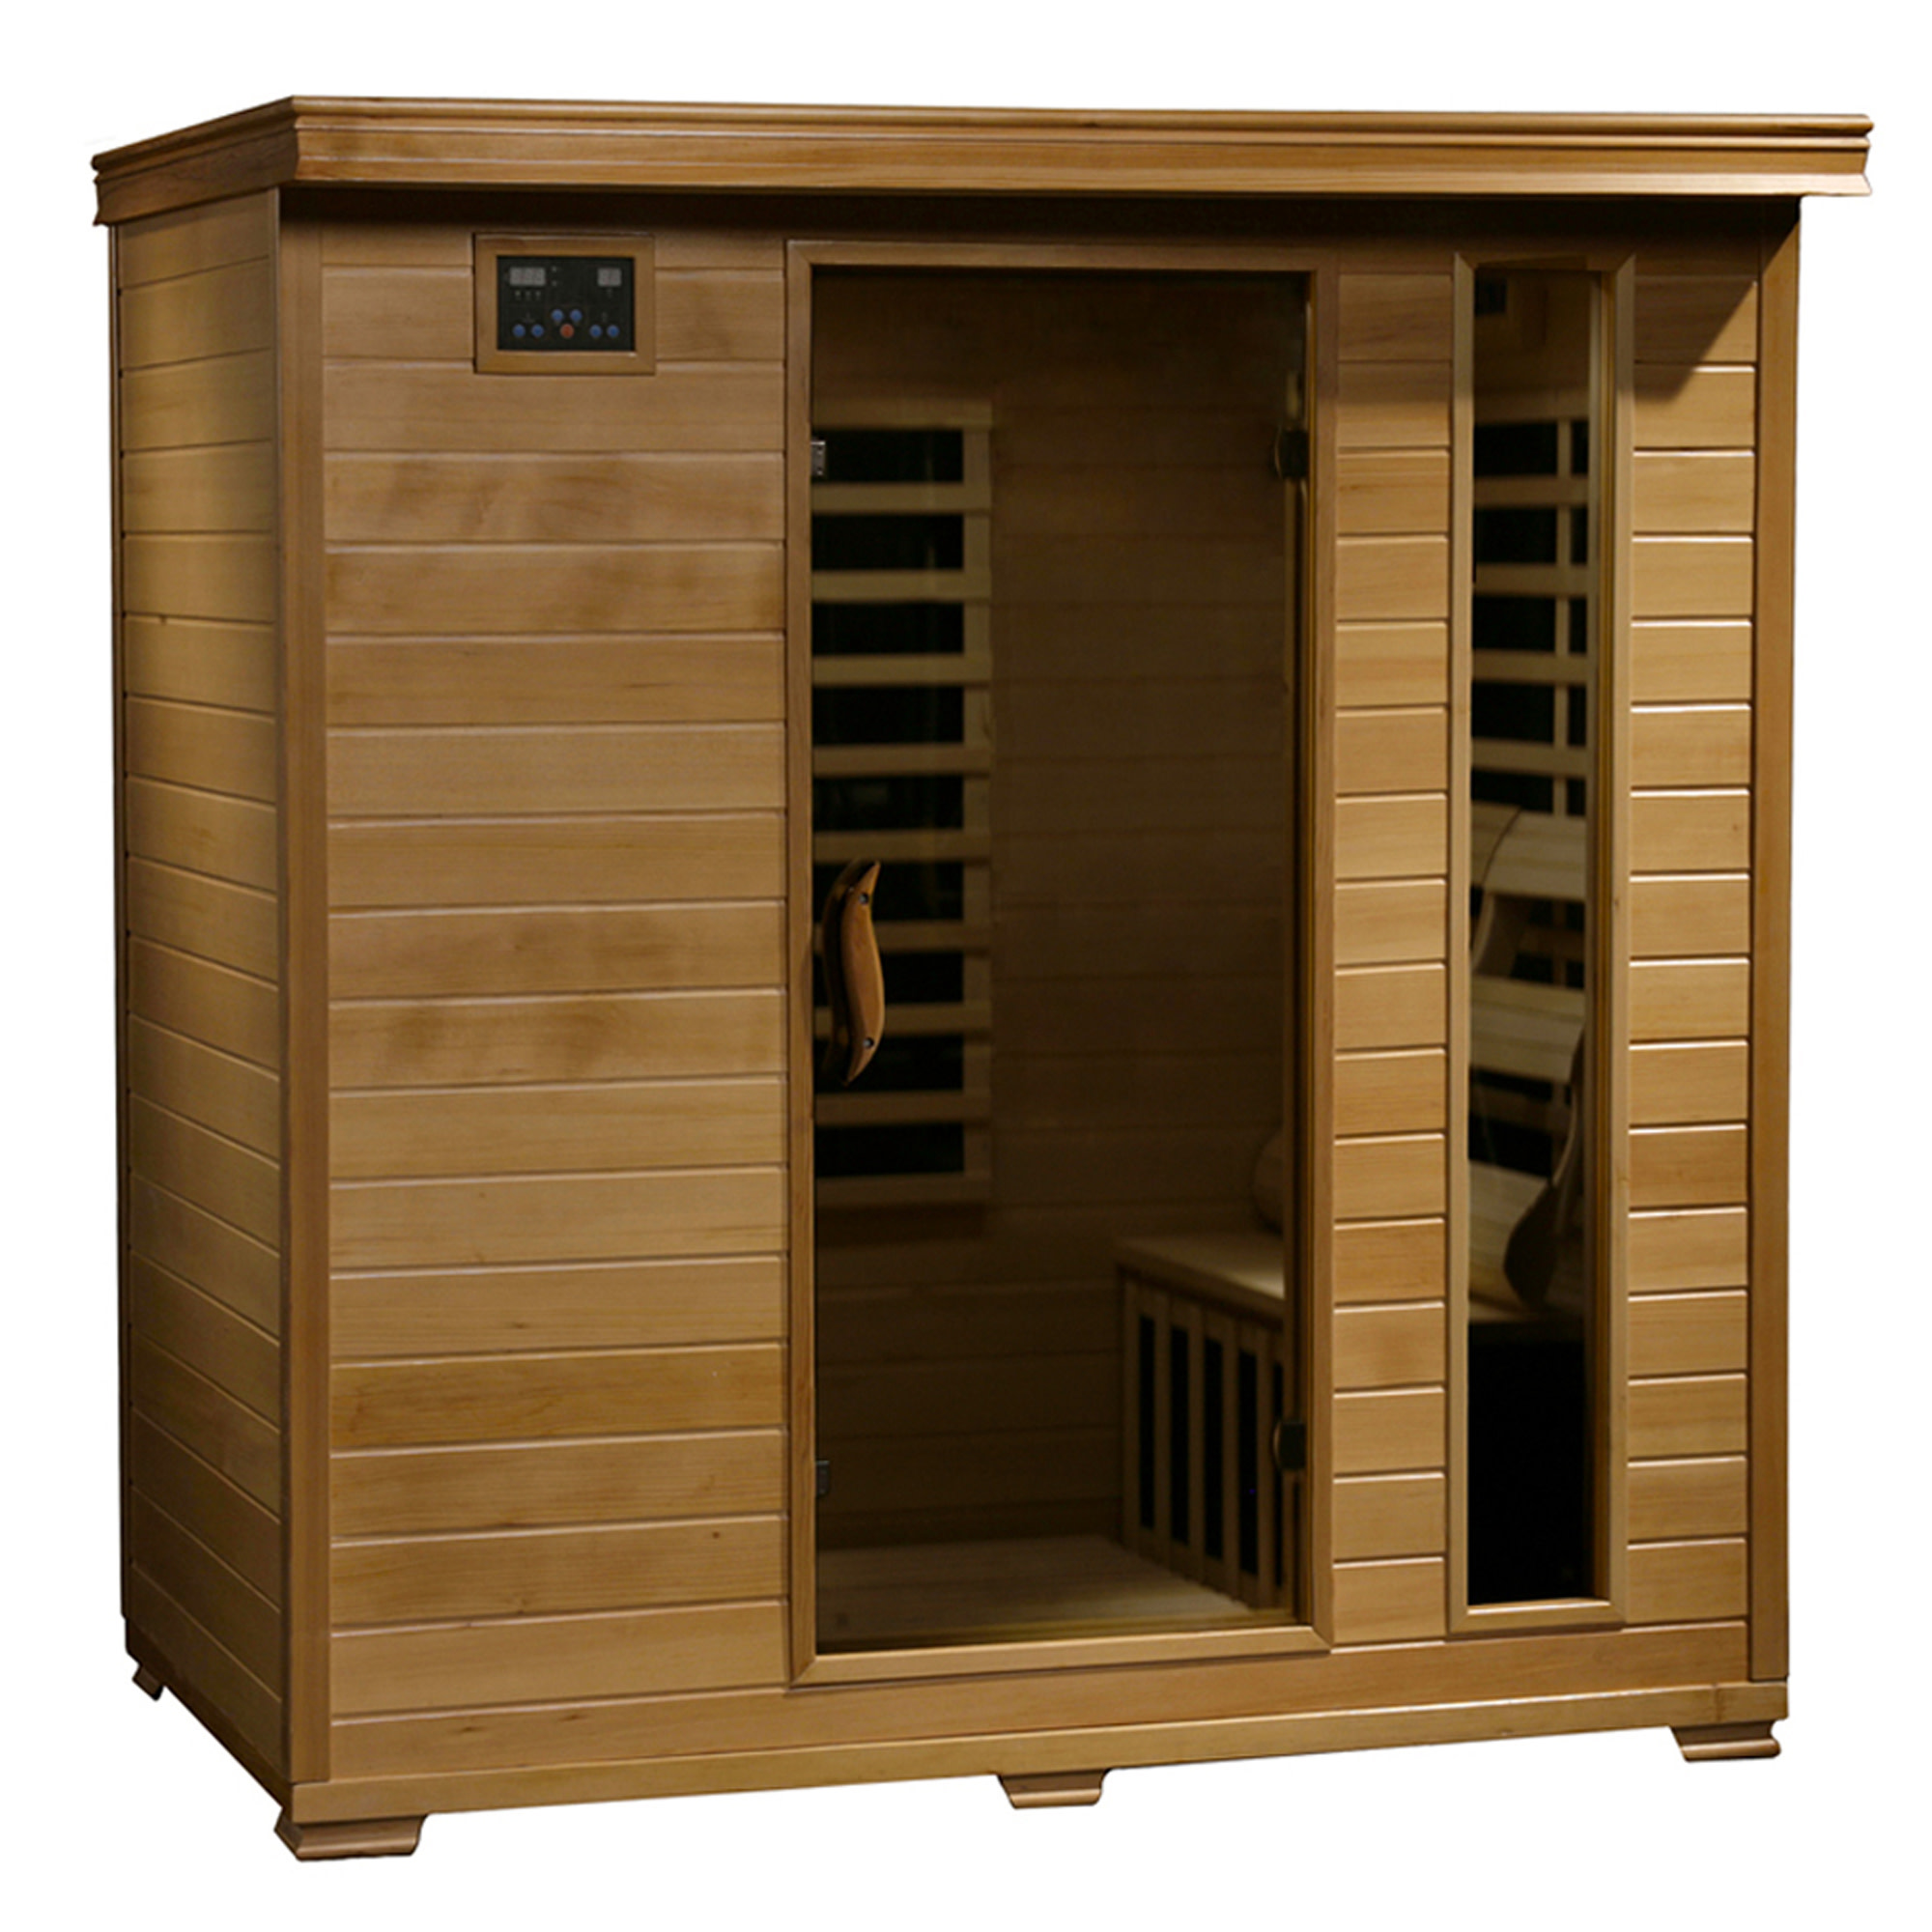 Radiant Saunas Radiant Saunas Infrared Hemlock Sauna for 4 People with 9 Low-EMF Carbon Heaters, Chromotherapy and Audio System